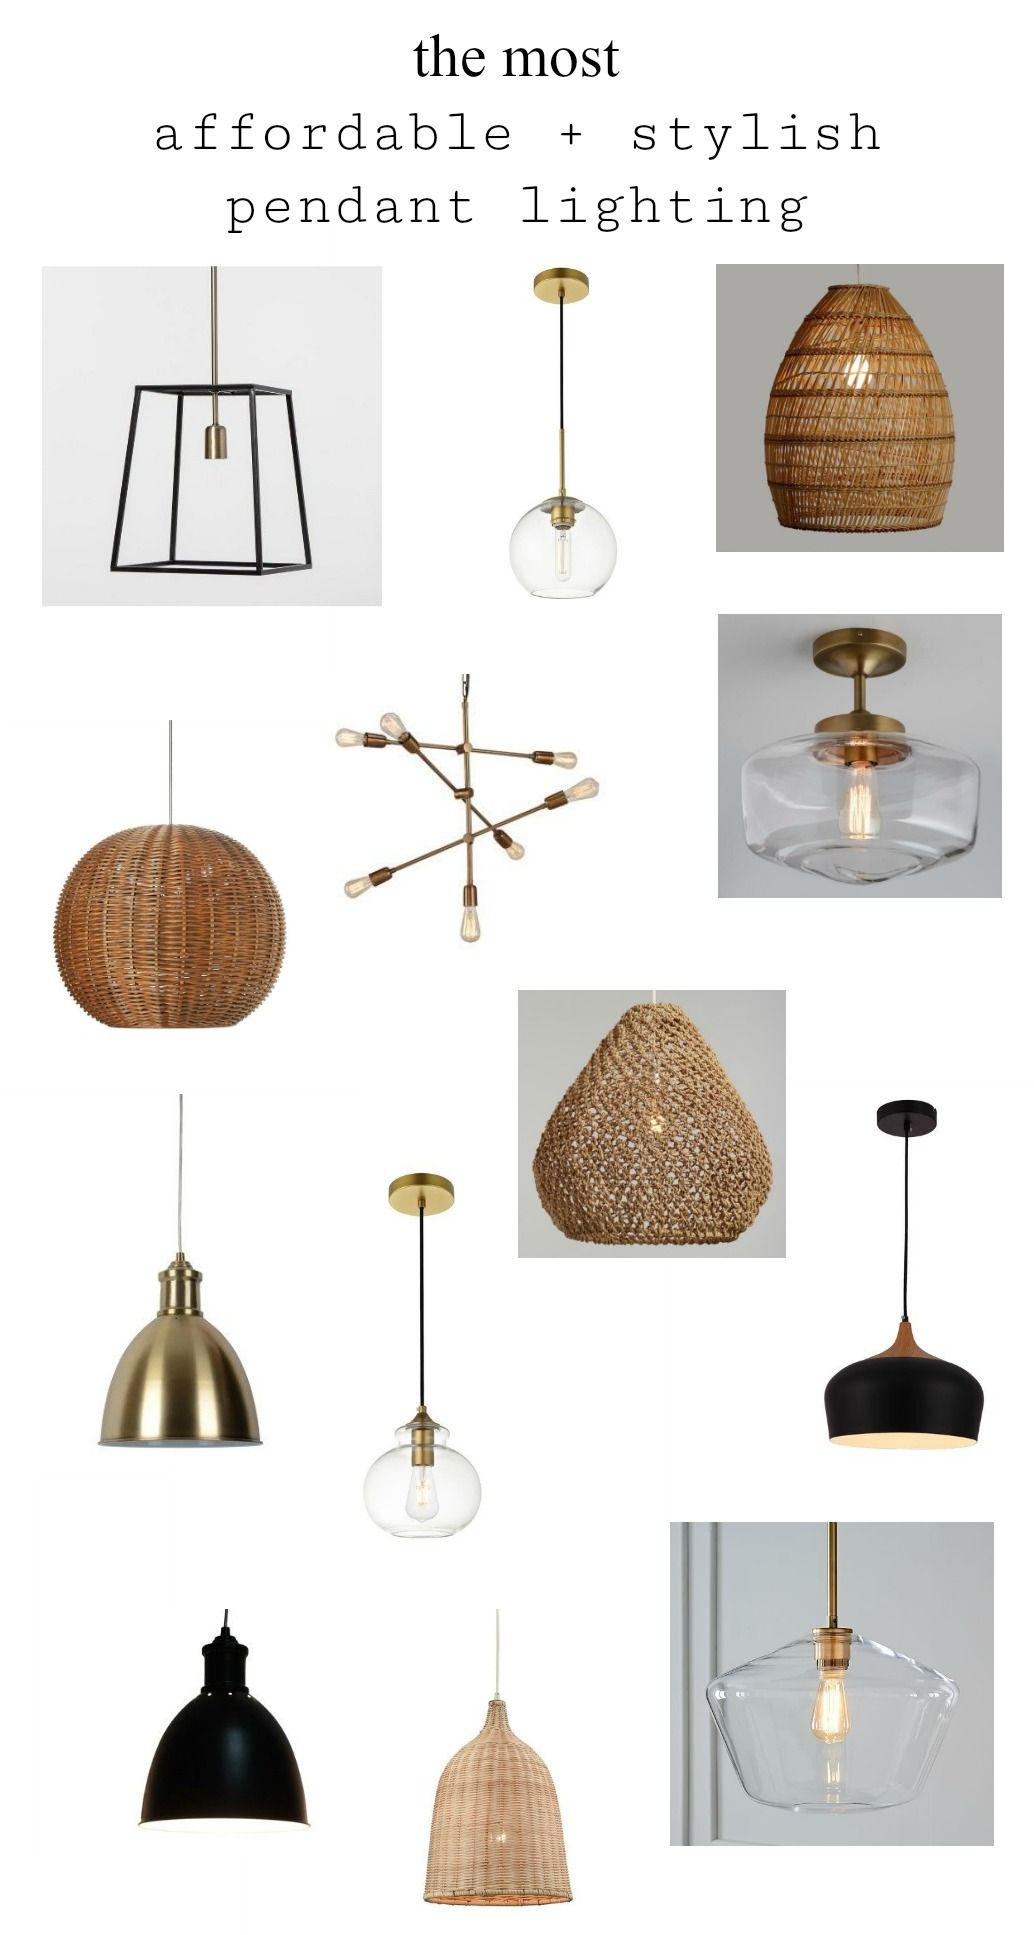 The Most Affordable + Stylish Pendant Lighting